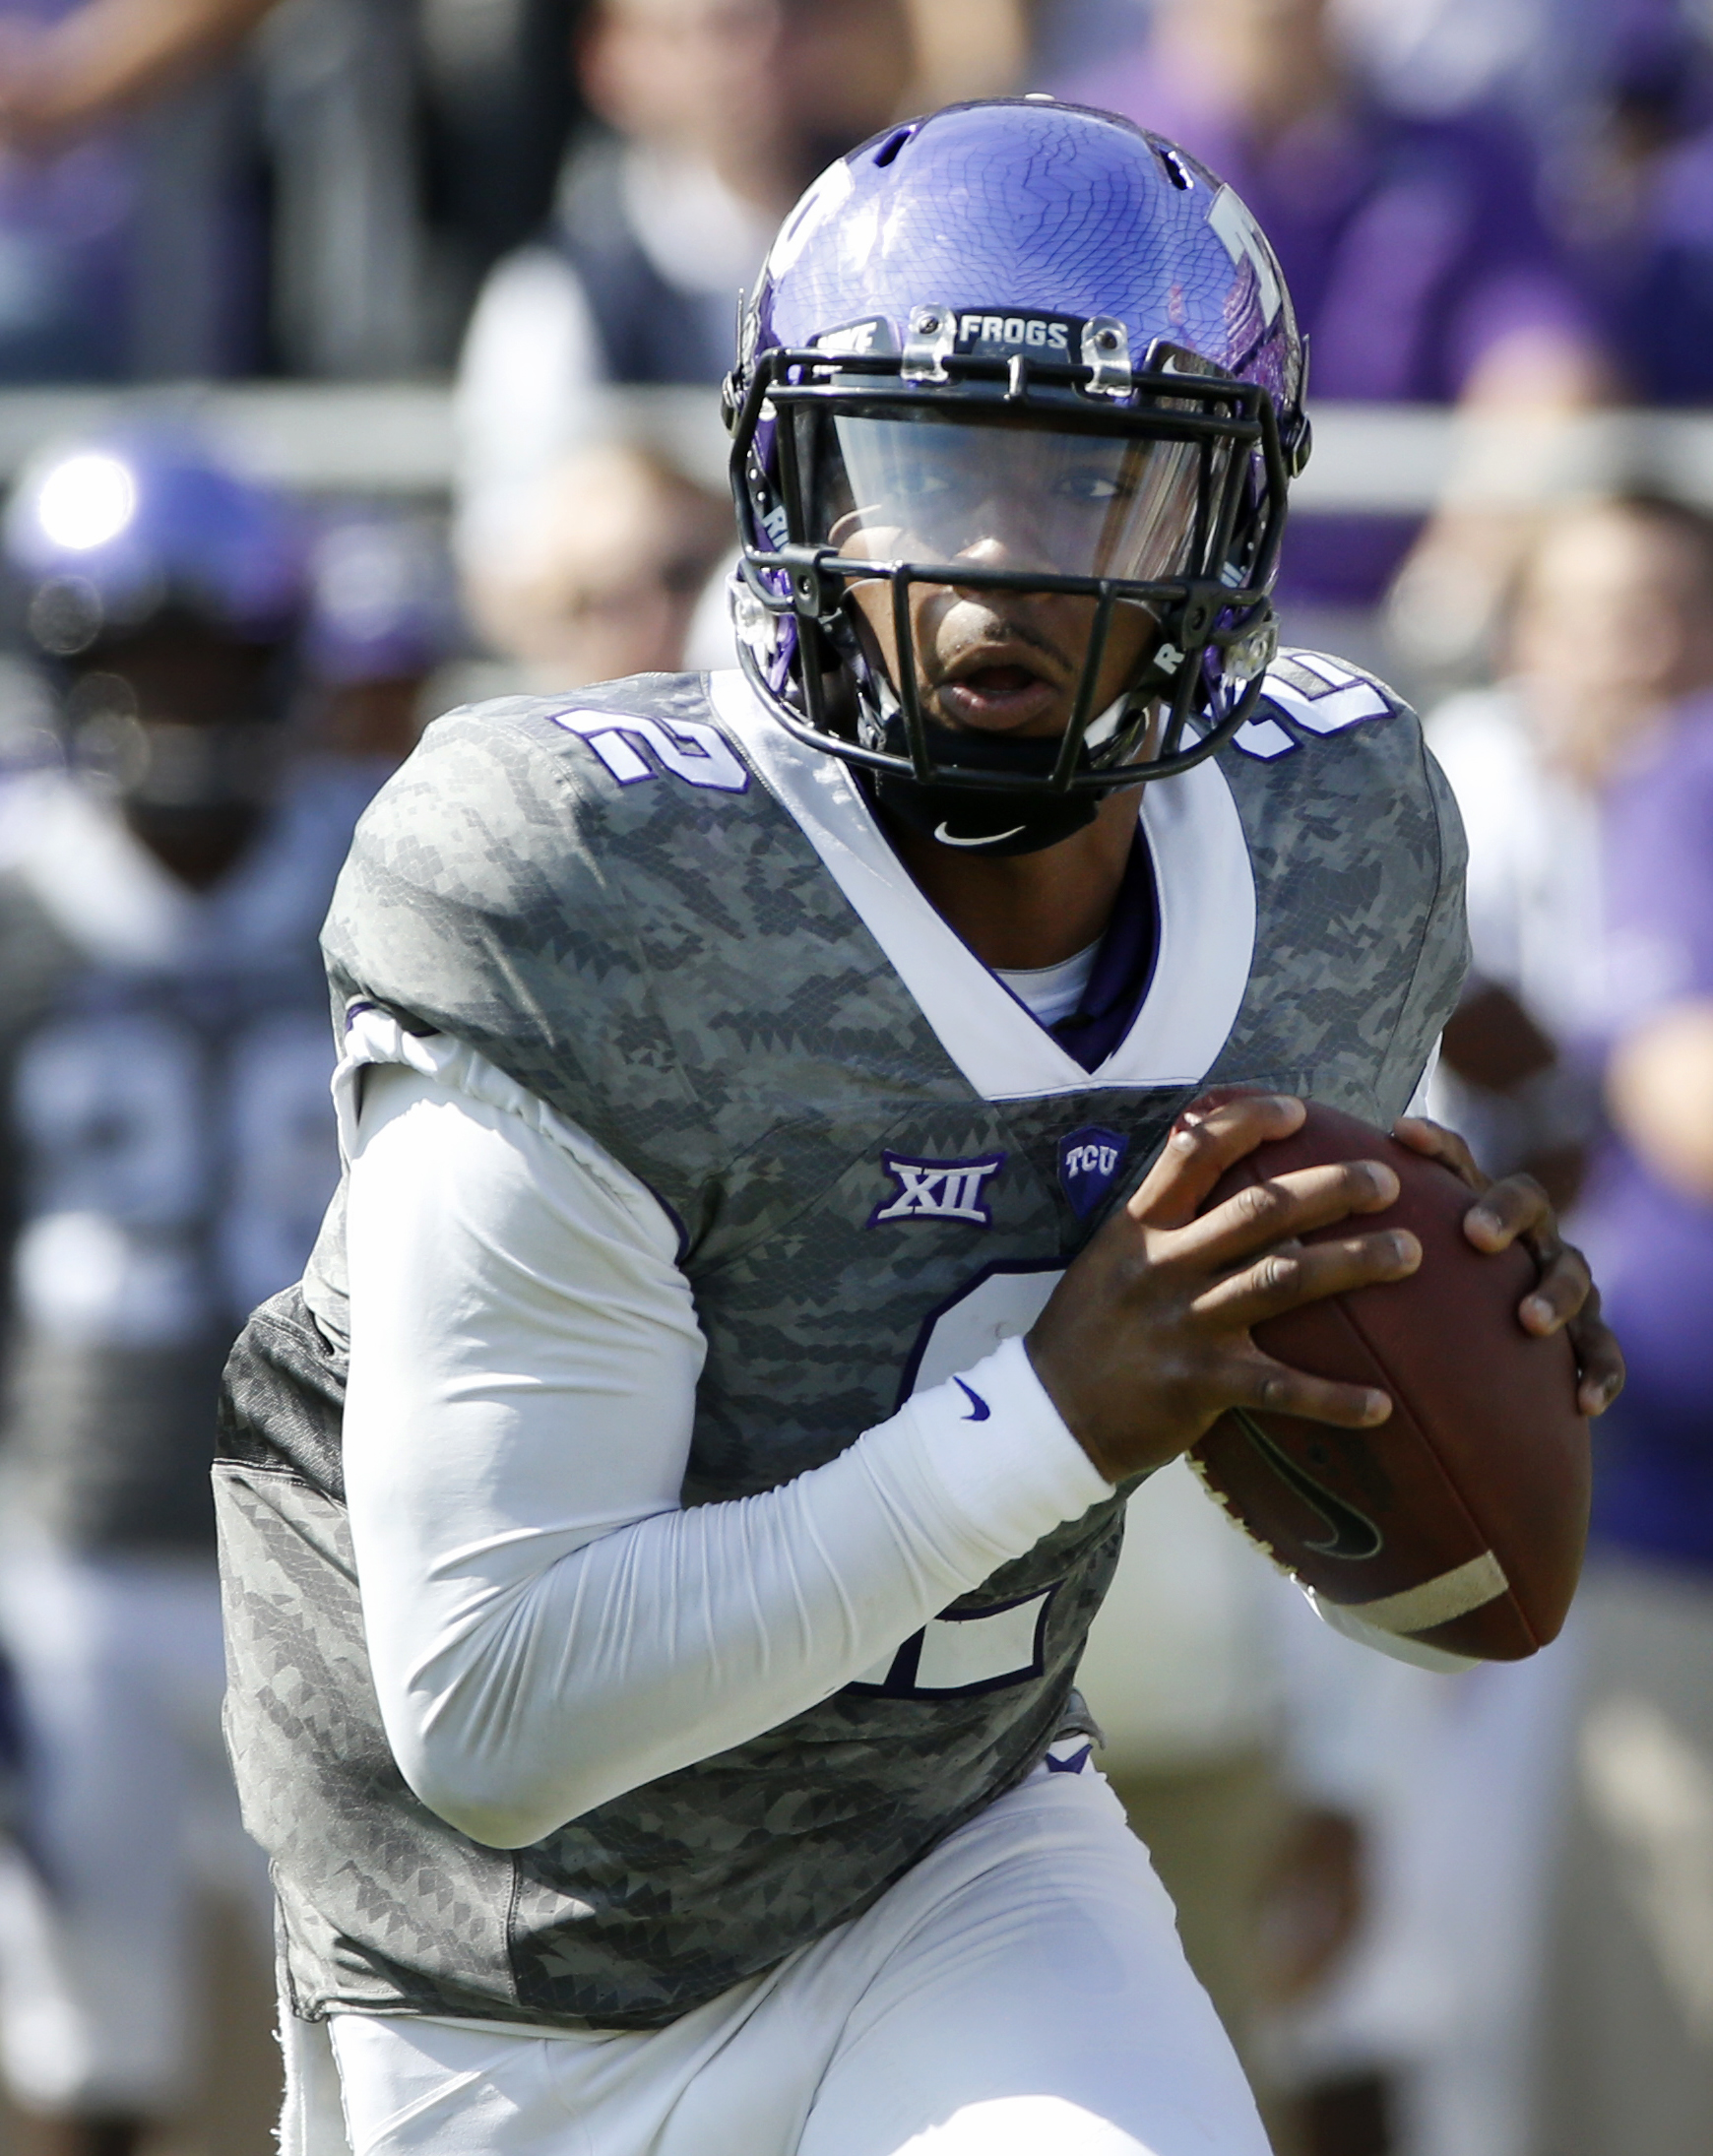 TCU quarterback Trevone Boykin (2) looks to throw in the first quarter of an NCAA college football game against Texas, Saturday, Oct. 3, 2015, in Fort Worth, Texas. (AP Photo/Ron Jenkins)